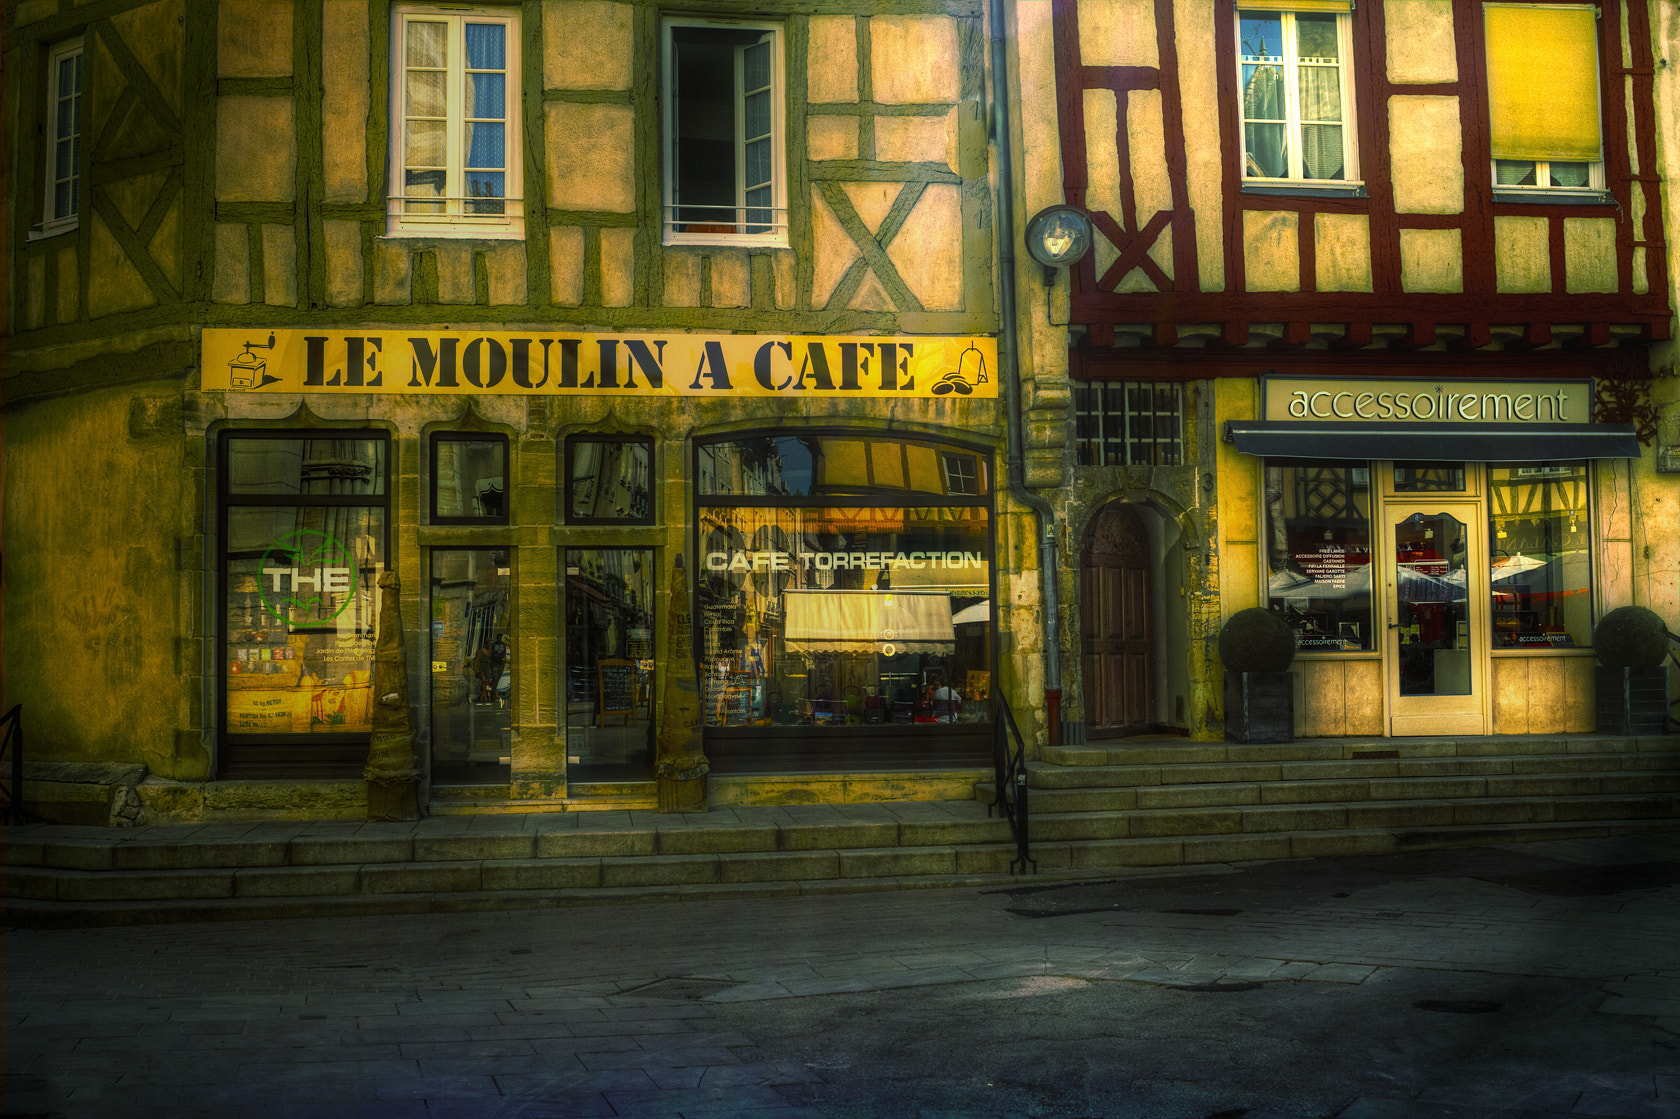 Photograph Le Moulin a cafe by Minusca Marini on 500px